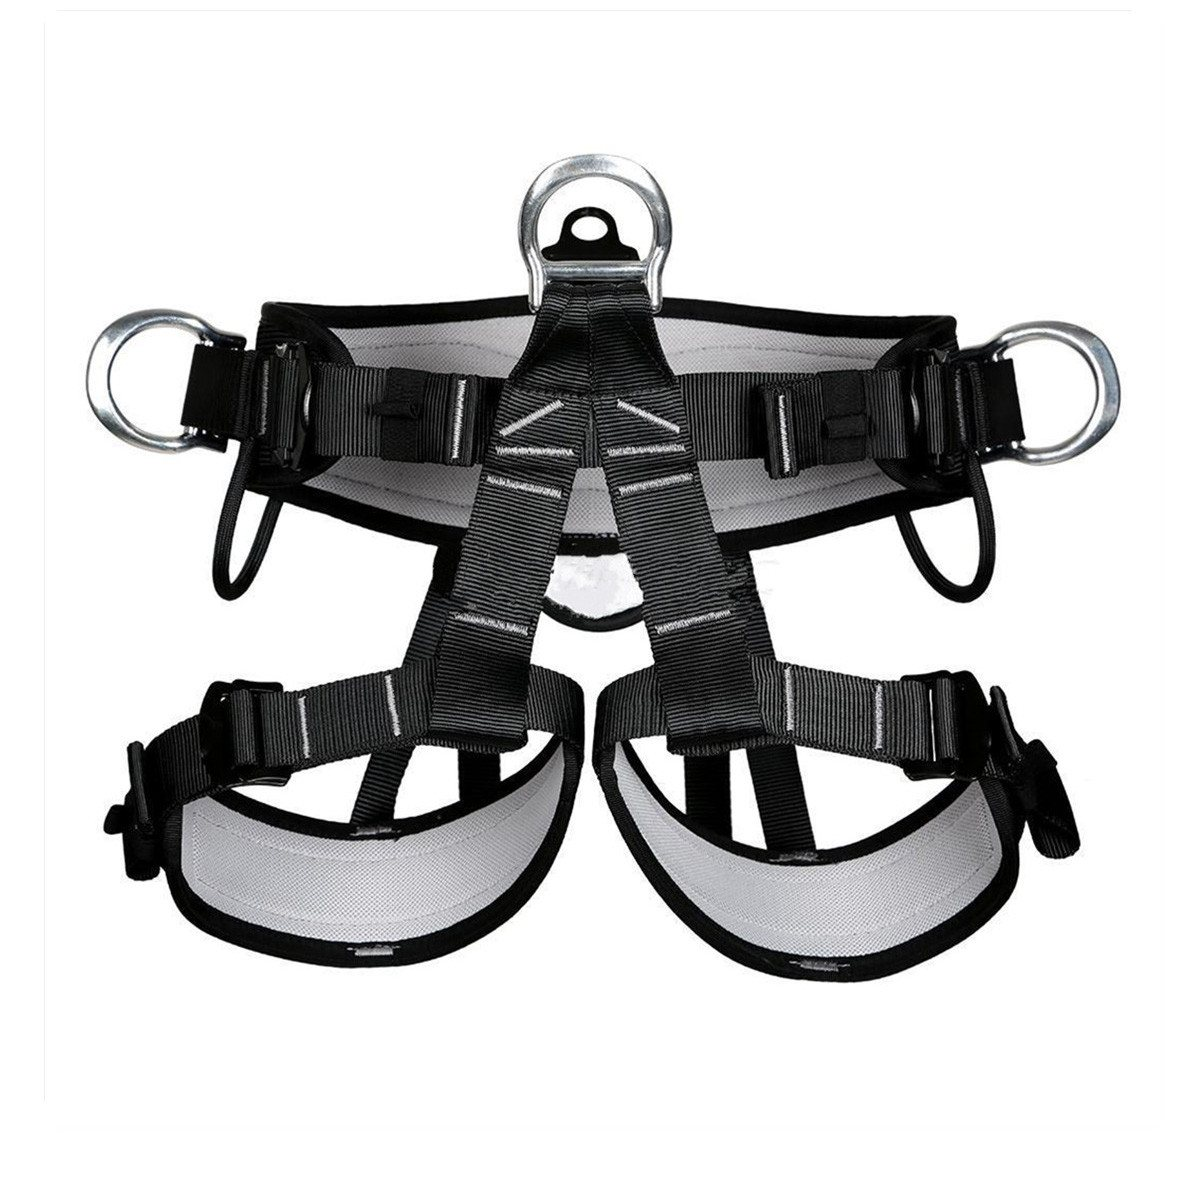 Outdoor Climbing Harness Seat Belt Safety Rappelling belt Downhill Rappel mountaineering Belts Adjustable Climb Rescue Equipment hot sale safety body harness outdoor mountaineering rock climbing harness protect waist seat belt outside multi tools